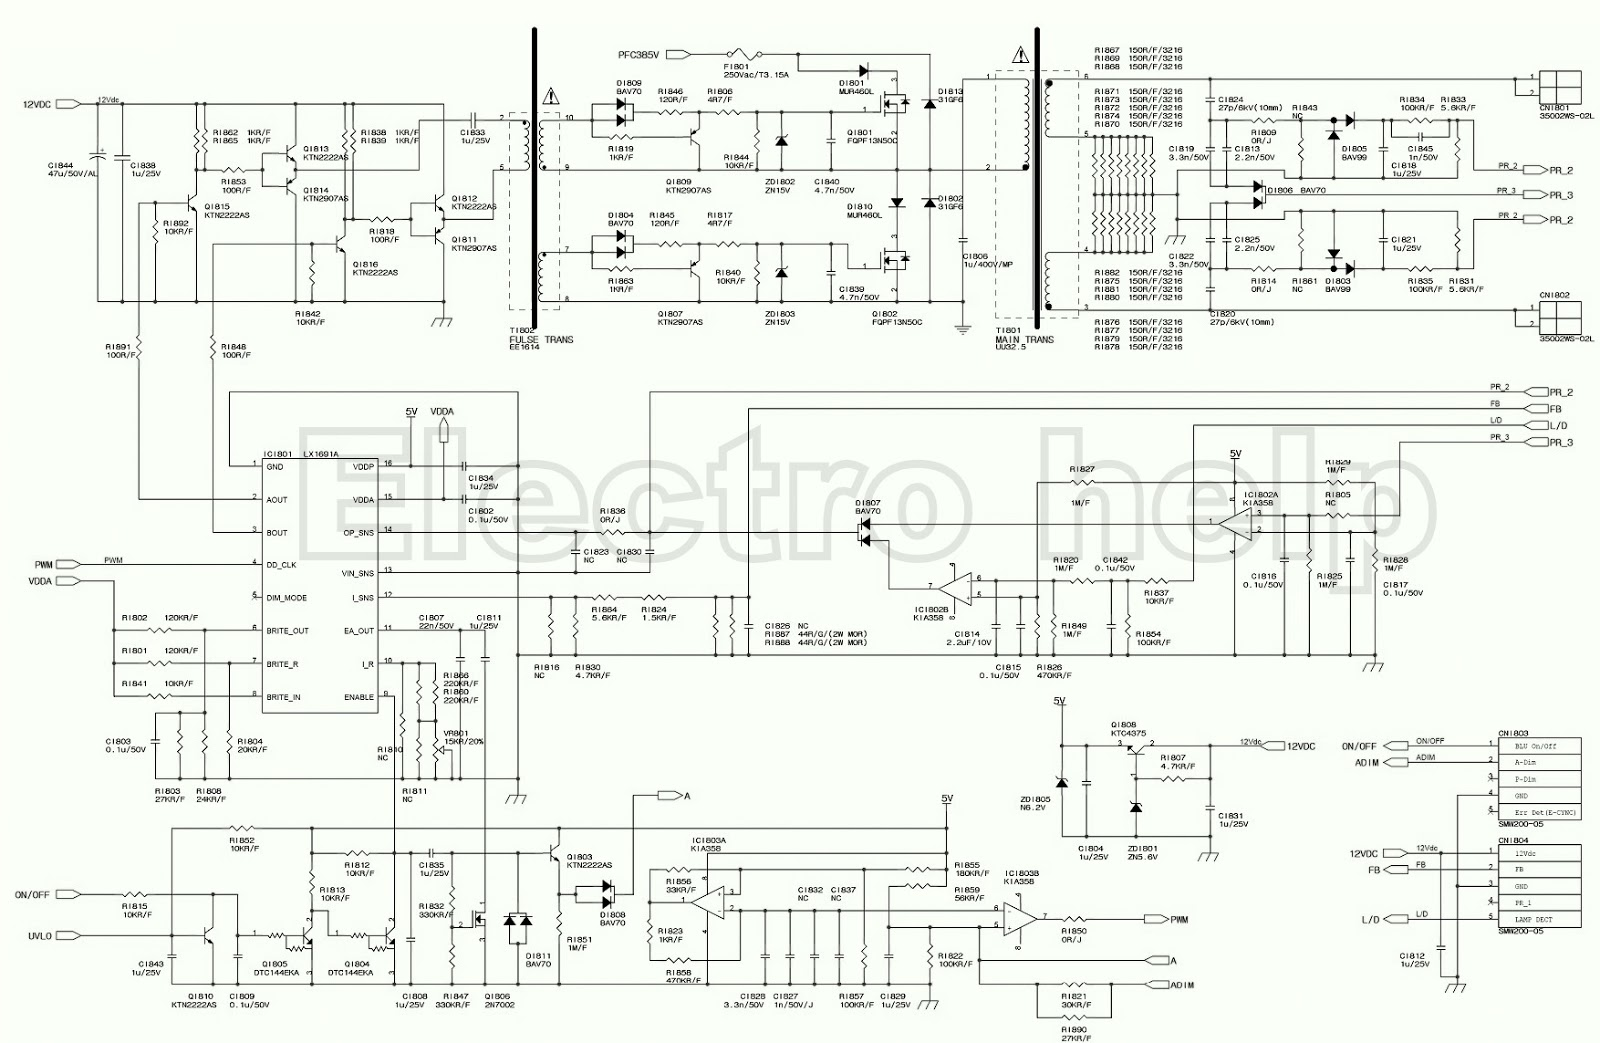 Tremendous Lcd Tv Diagram How Works Wiring Diagram M6 Ranpur Mohammedshrine Wiring Digital Resources Ranpurmohammedshrineorg